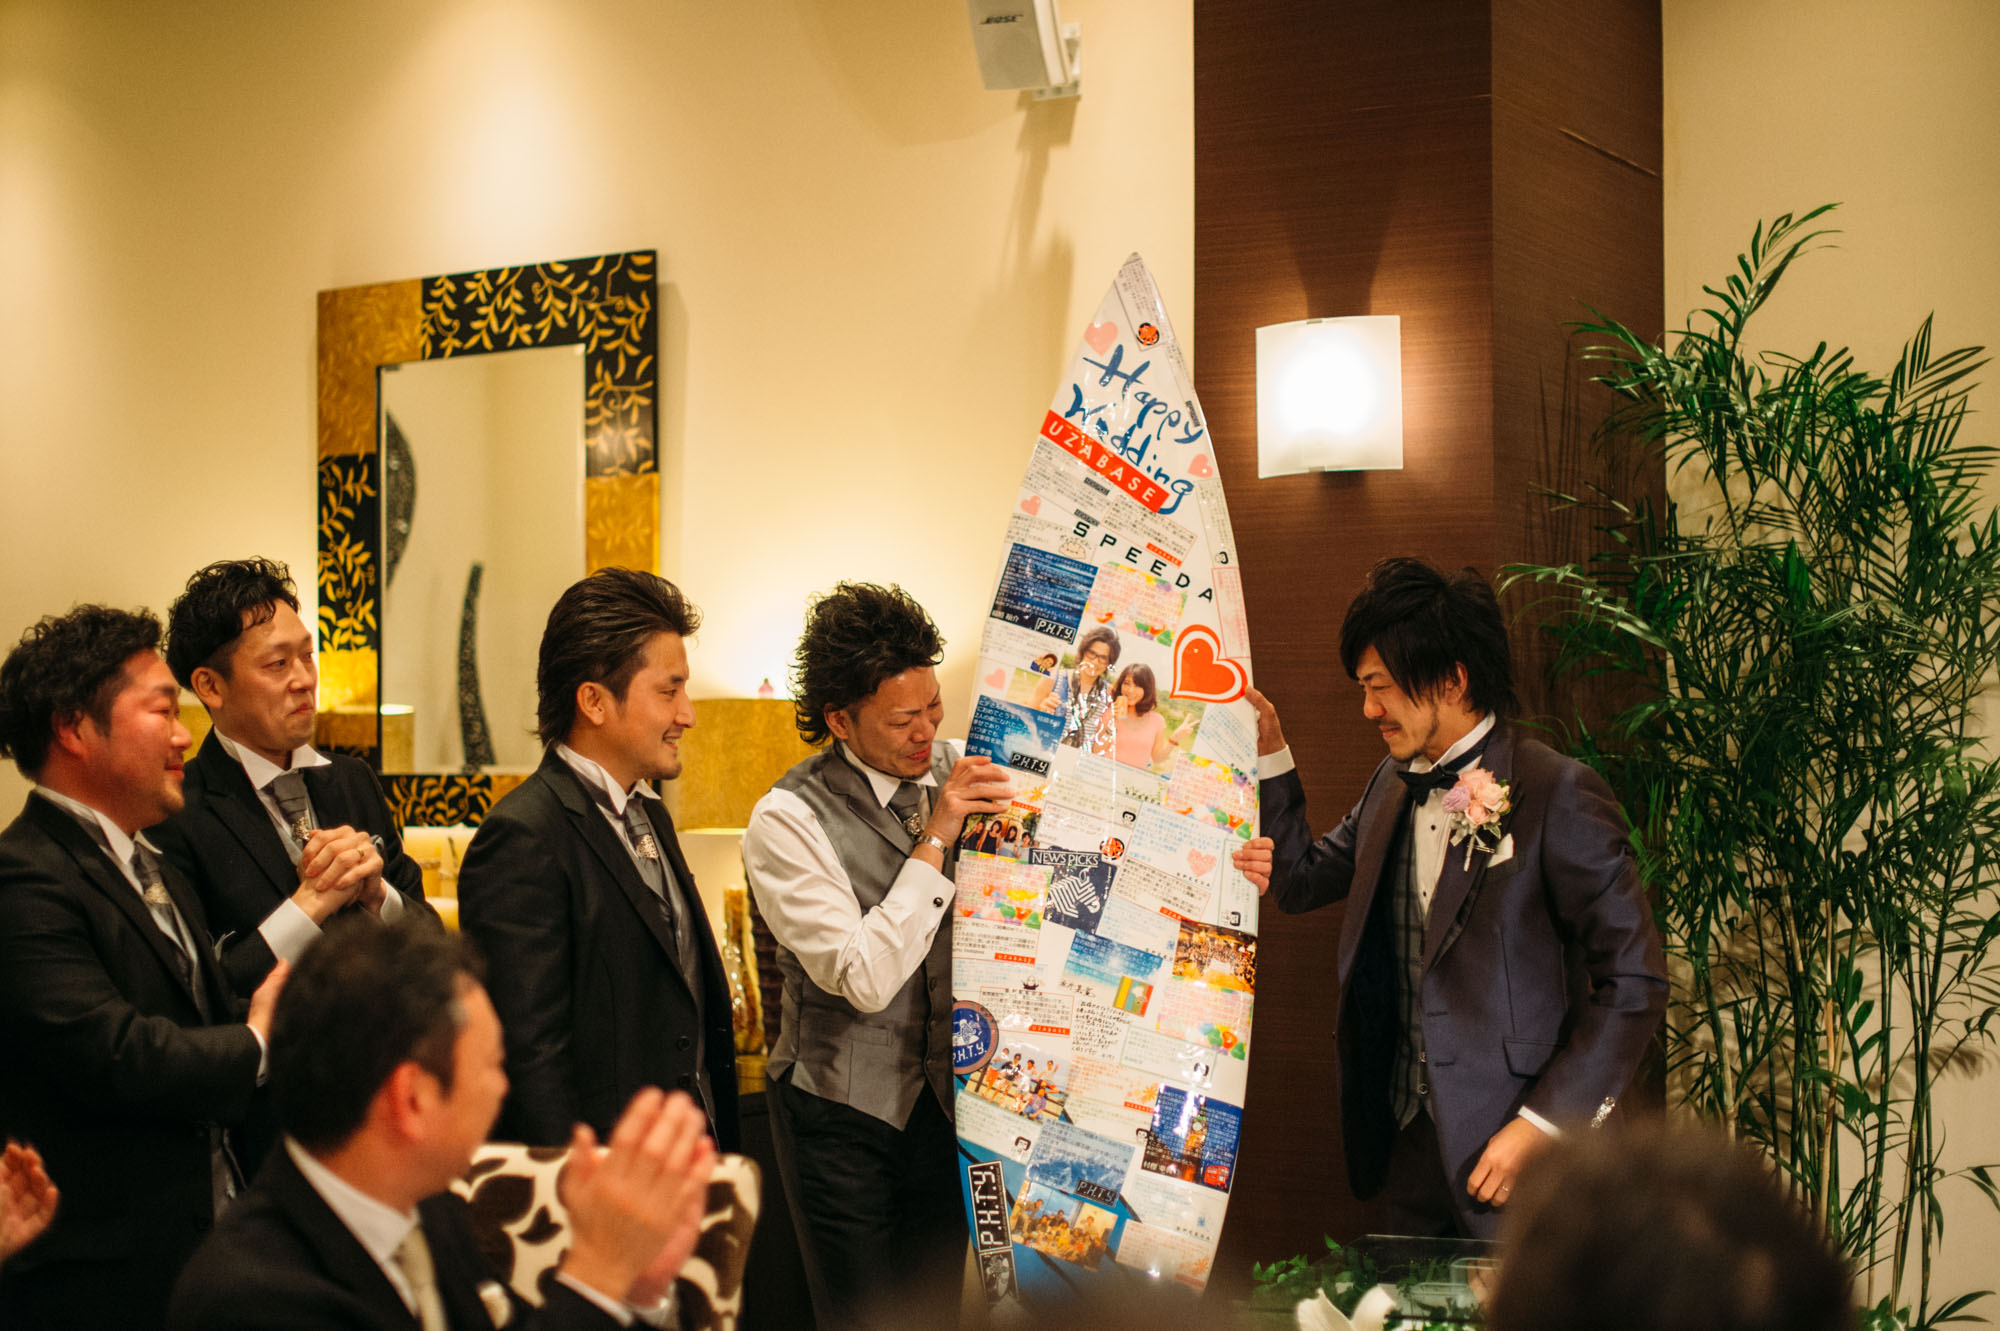 nagoya wedding131